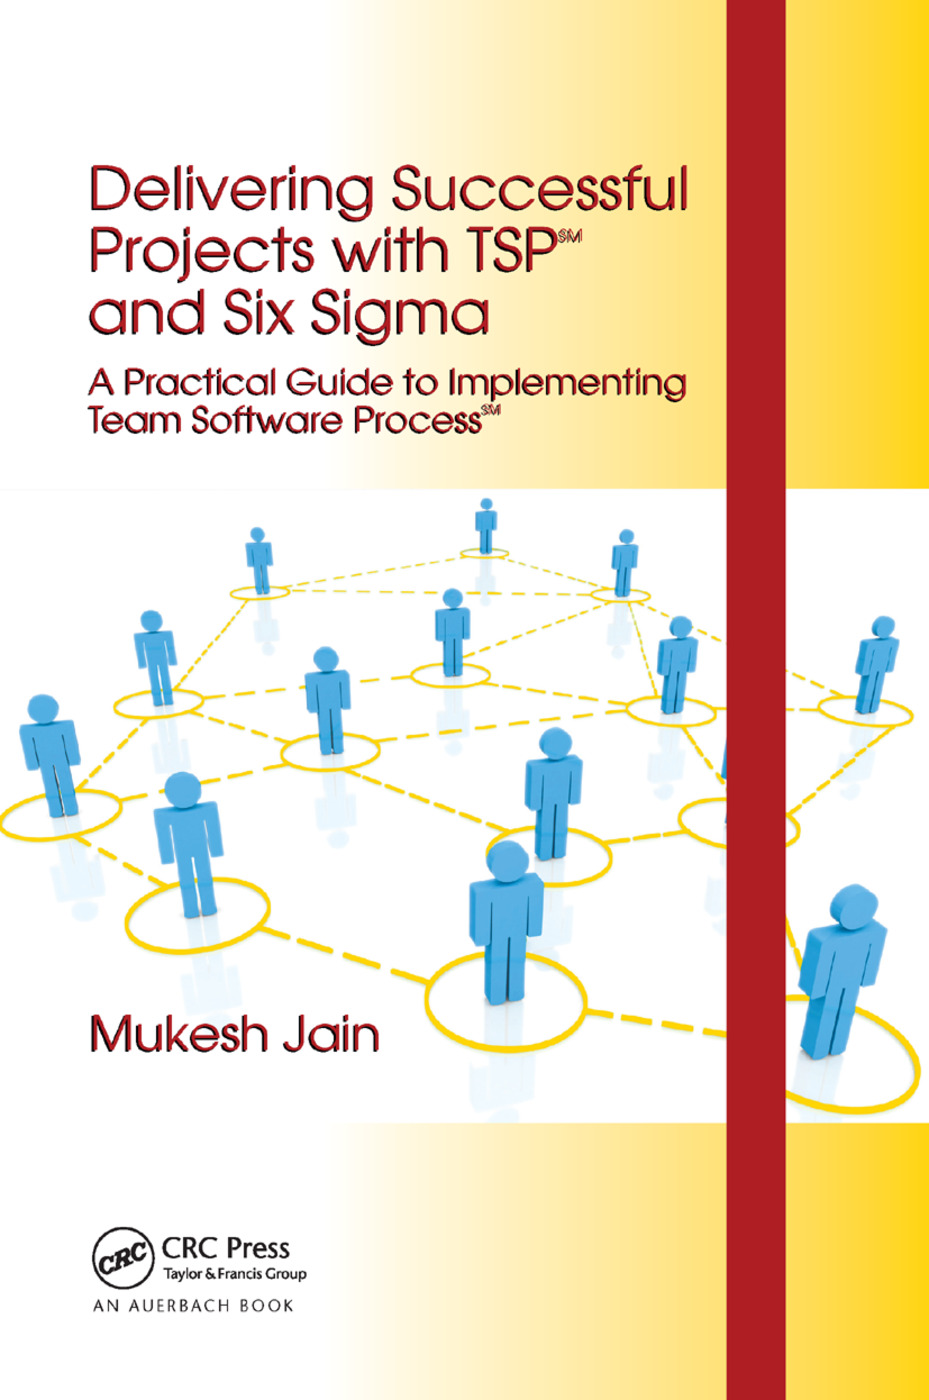 Delivering Successful Projects with TSP(SM) and Six Sigma: A Practical Guide to Implementing Team Software Process(SM), 1st Edition (Paperback) book cover